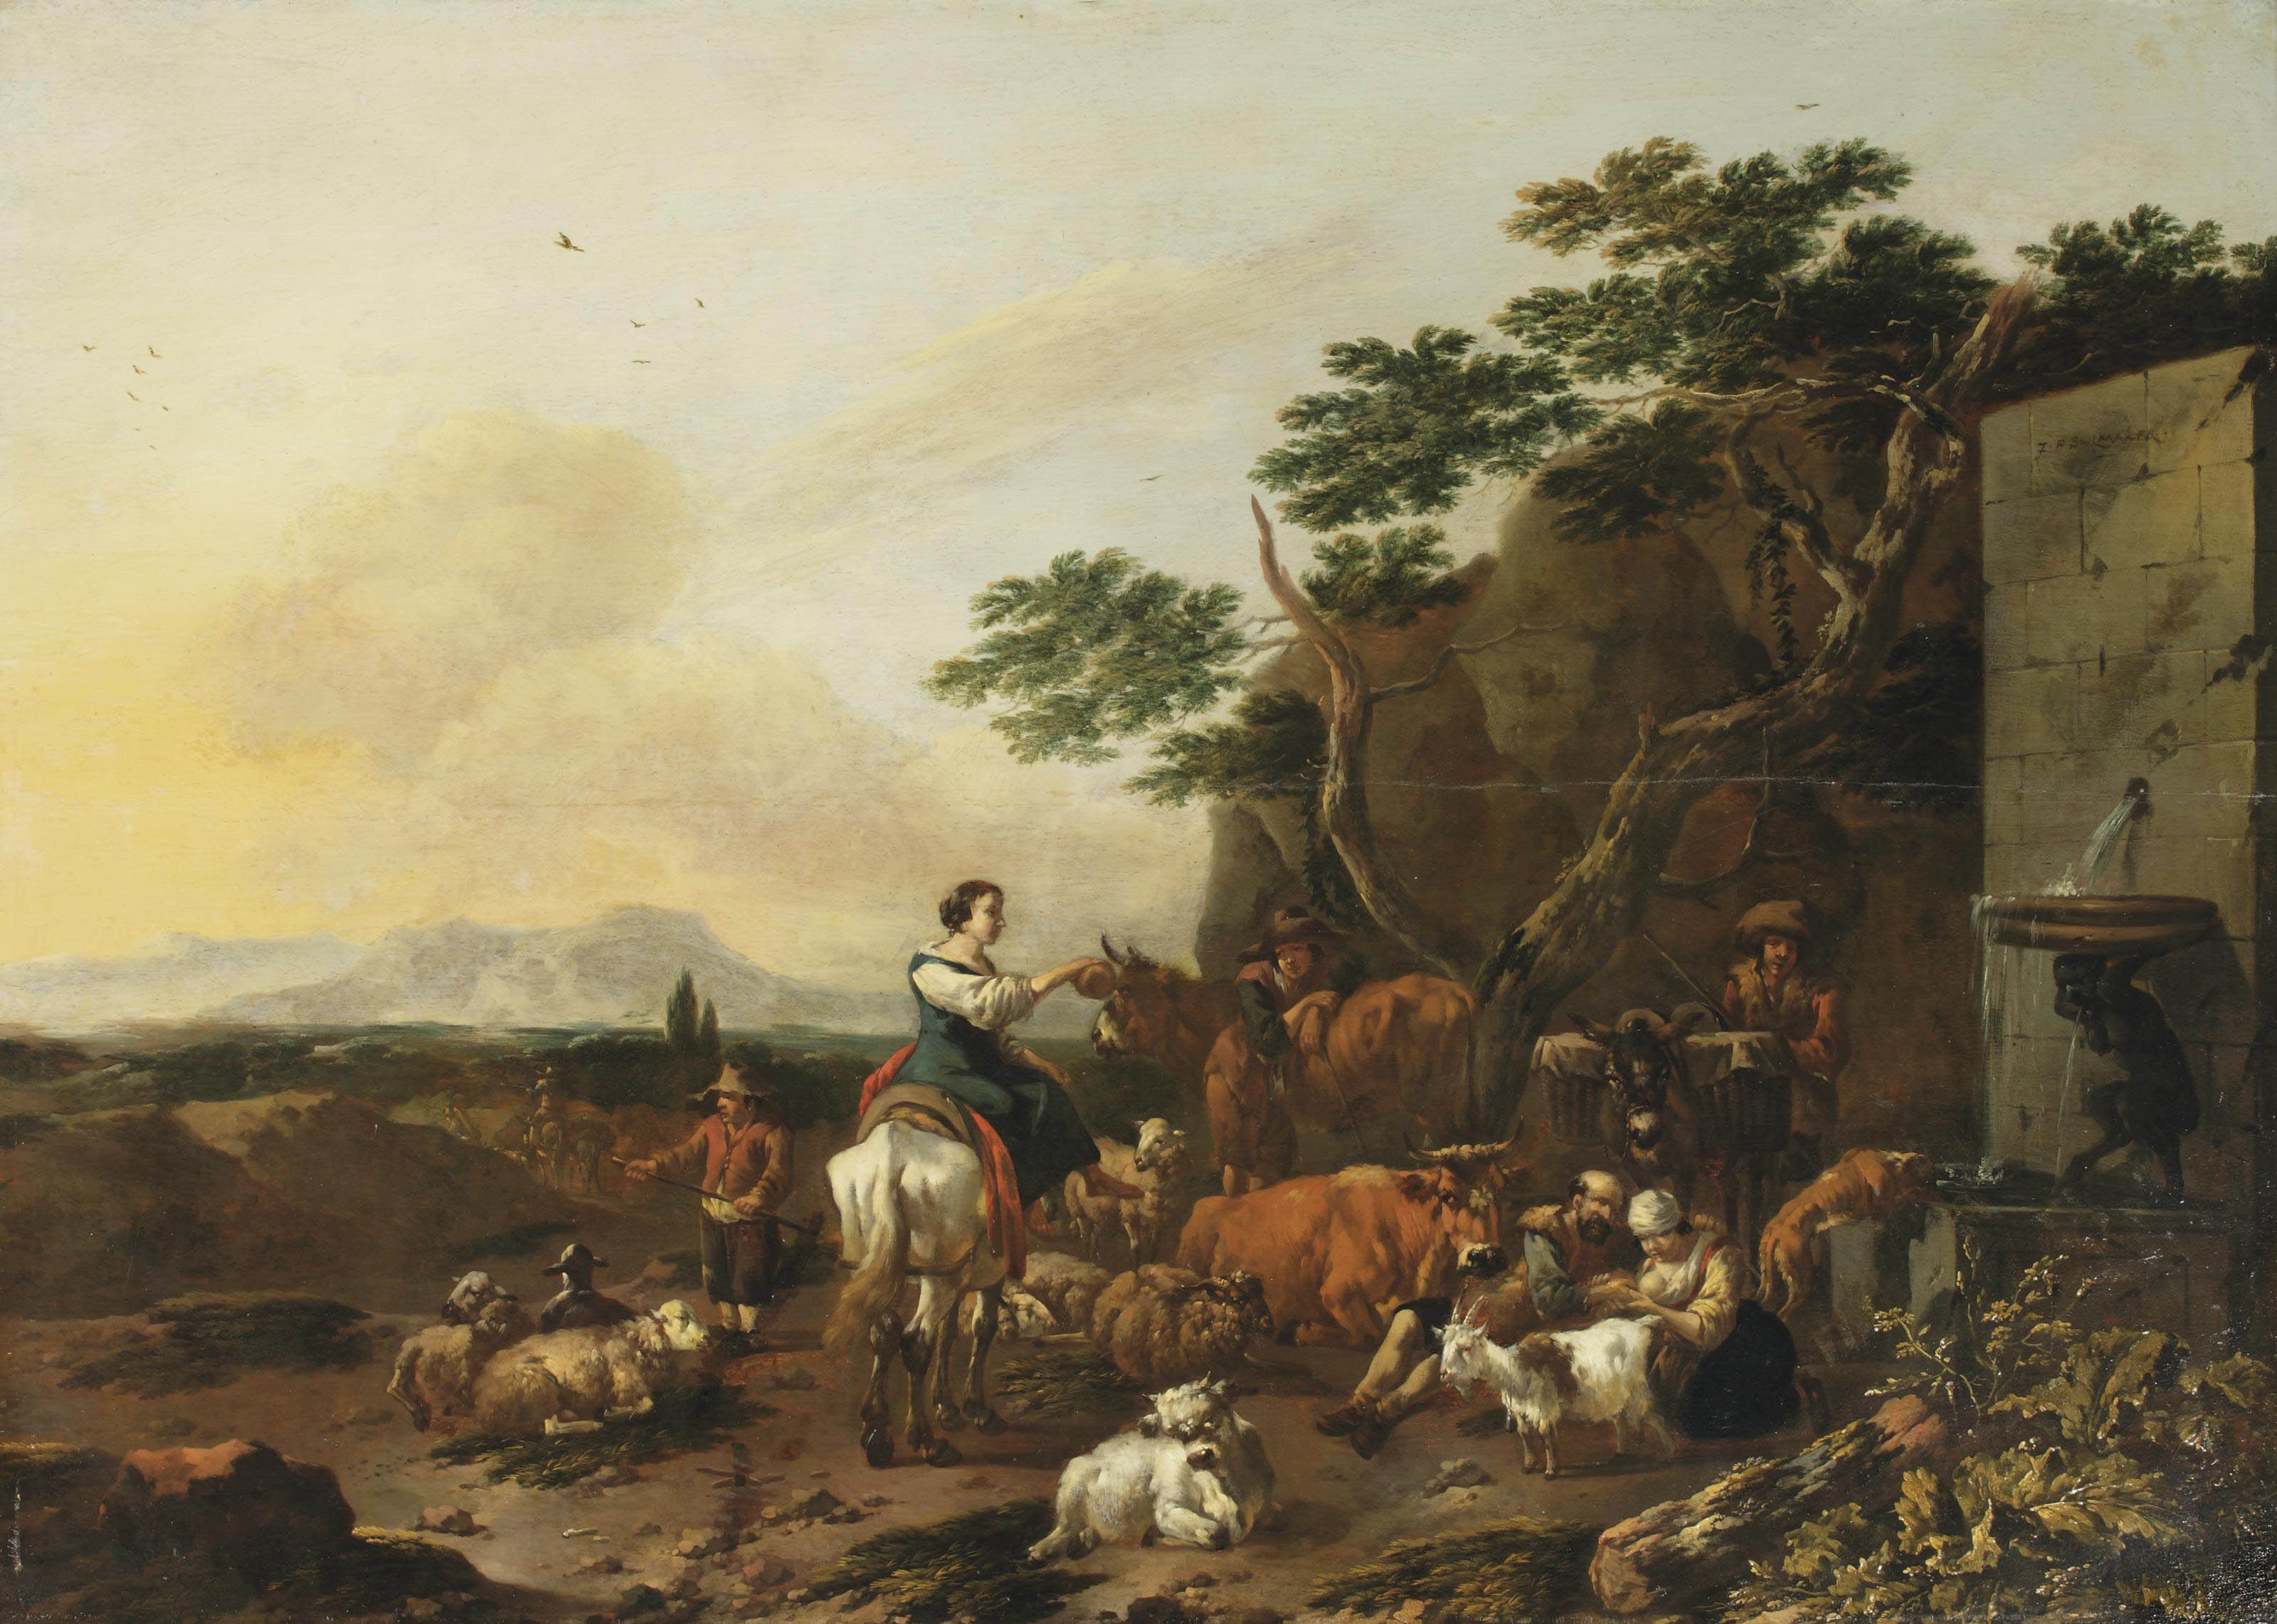 An Italianate landscape with shepherds and their stock resting near a fountain